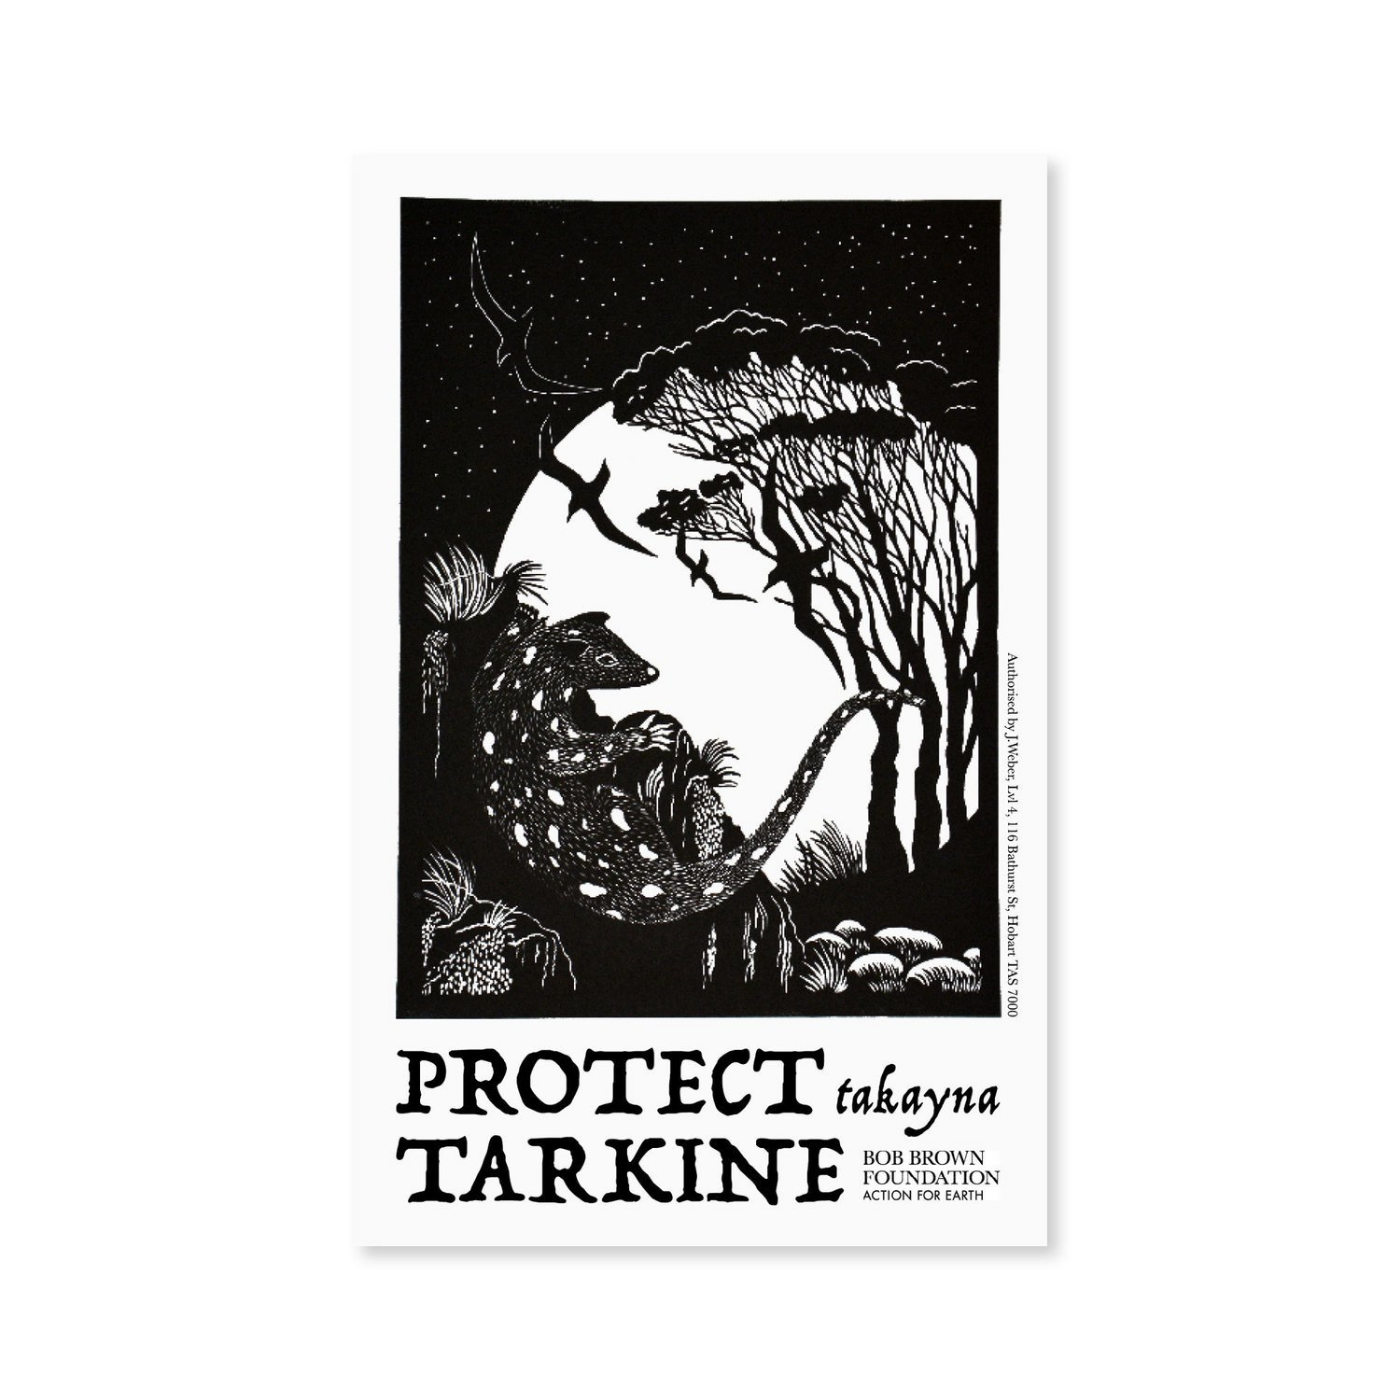 Bob Brown Foundation - Sticker - Protect takayna / Tarkine, Anne Conran Print